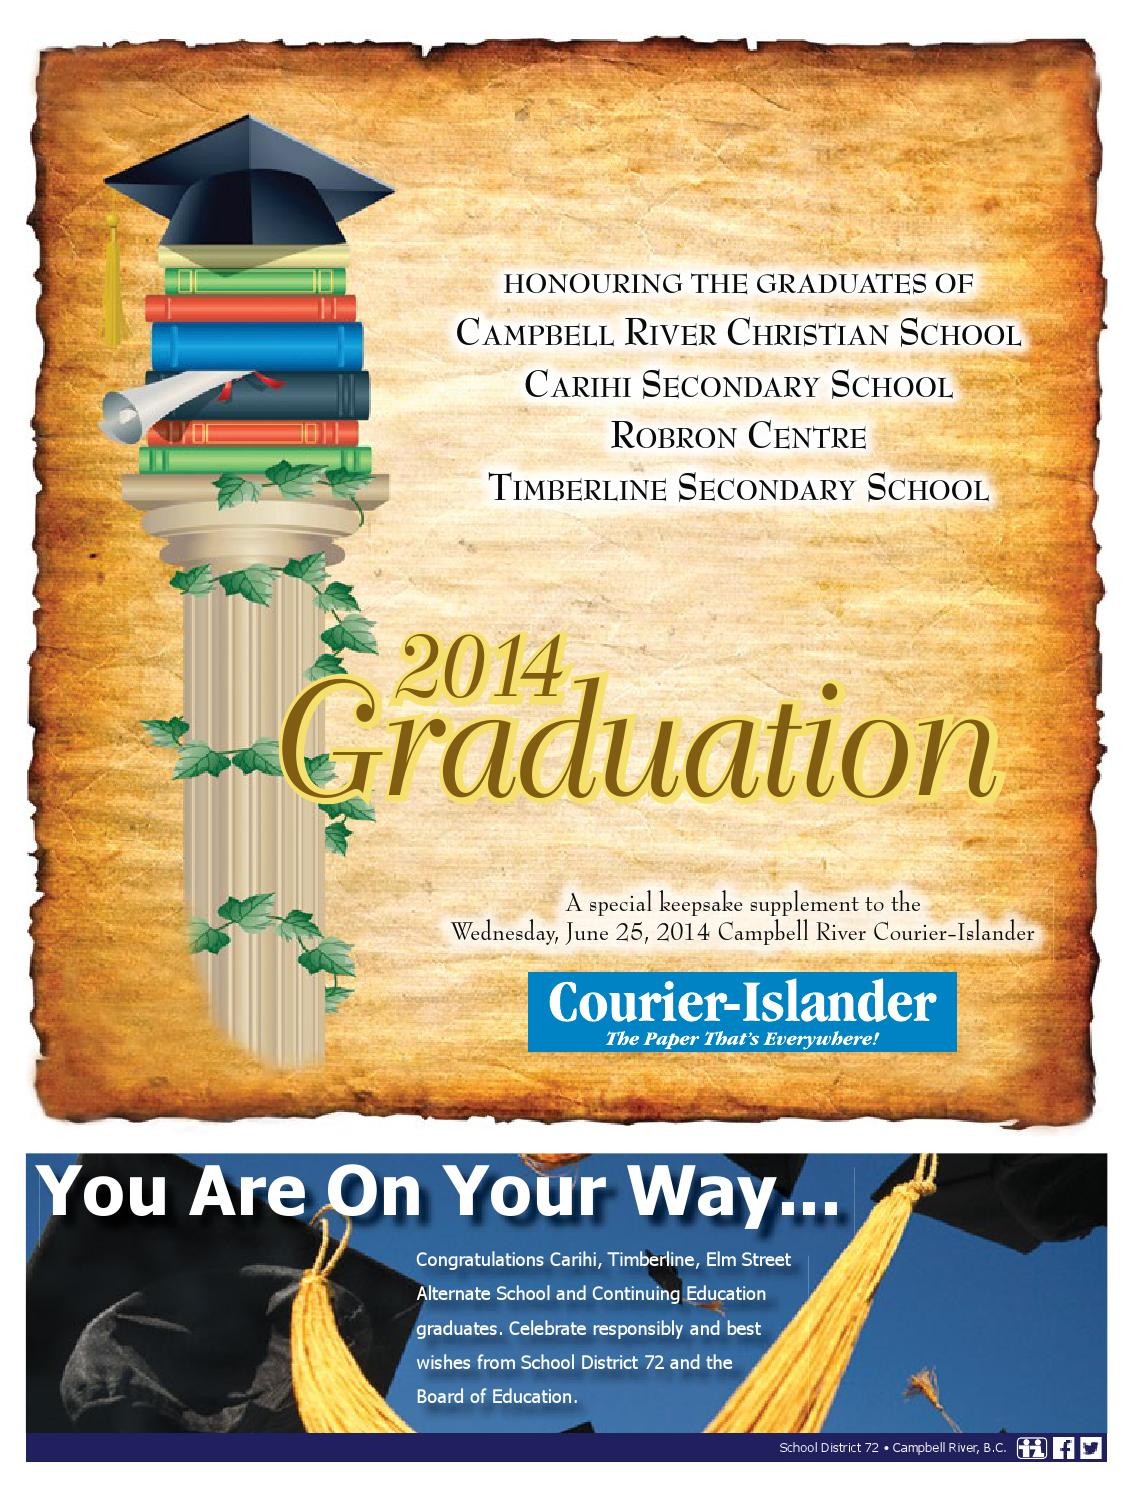 Crci062514 grads by Campbell River Courier-Islander - issuu